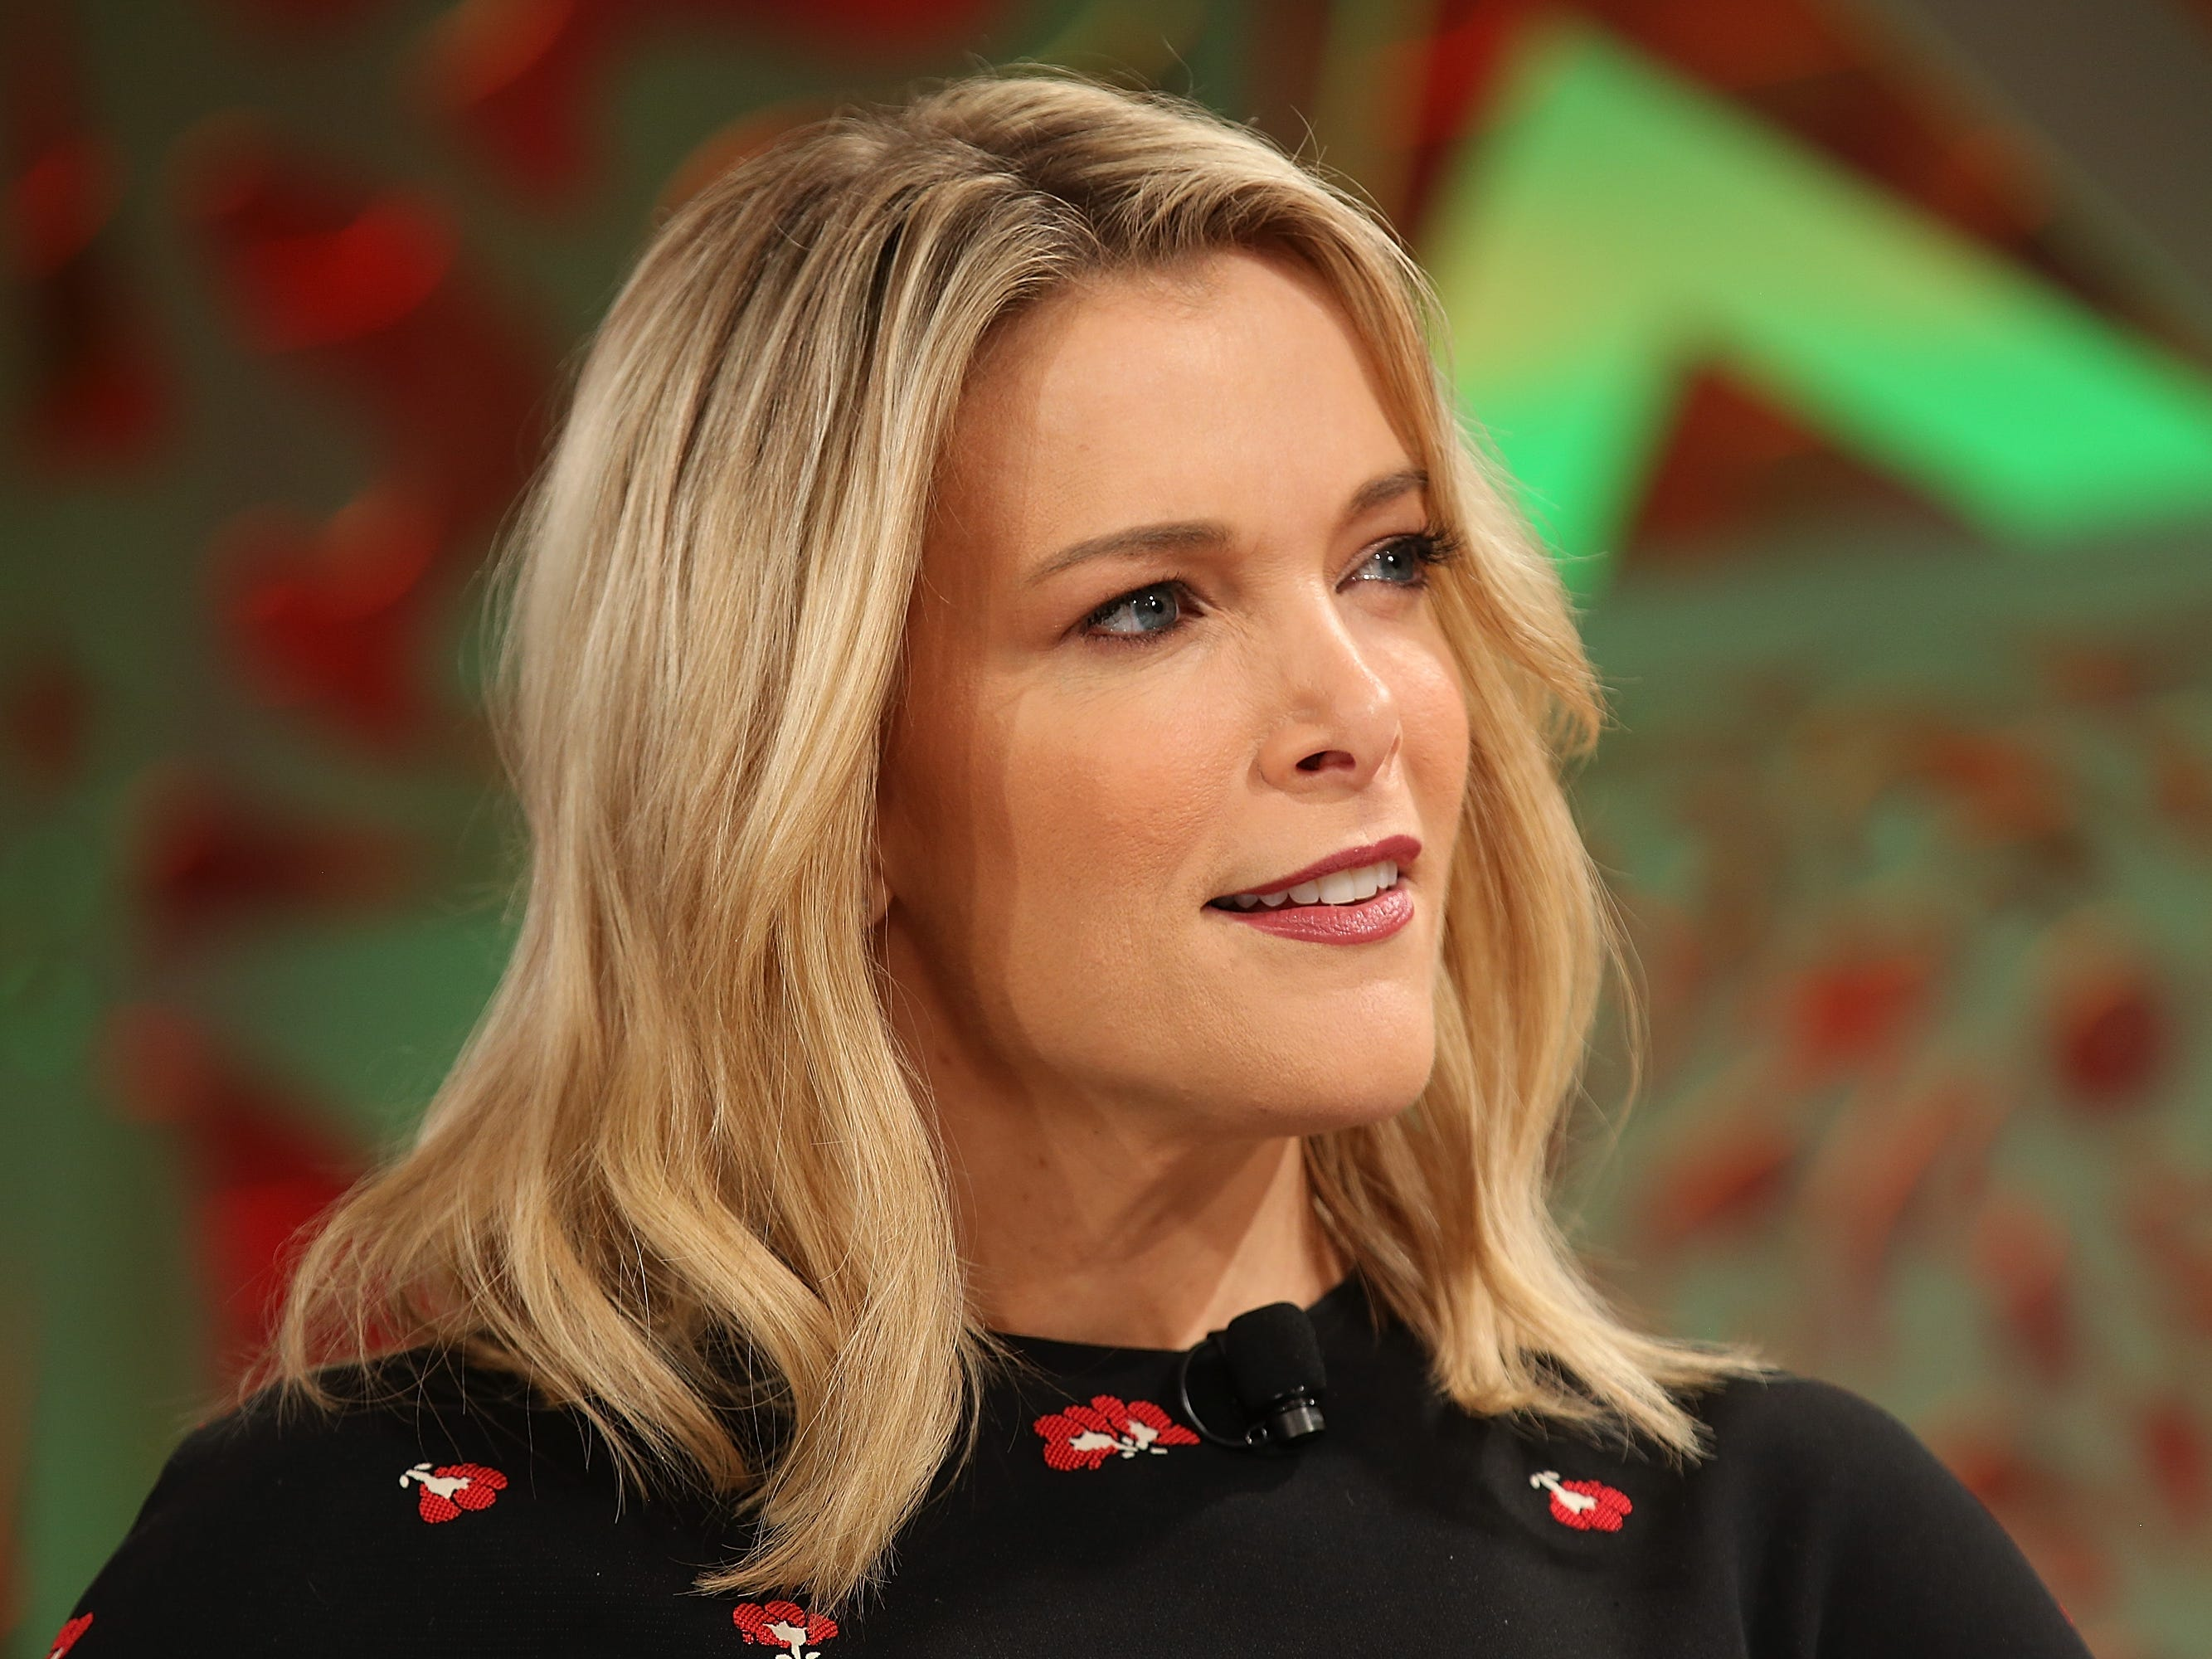 Social media slams Megyn Kelly for defending blackface on 'Today' show